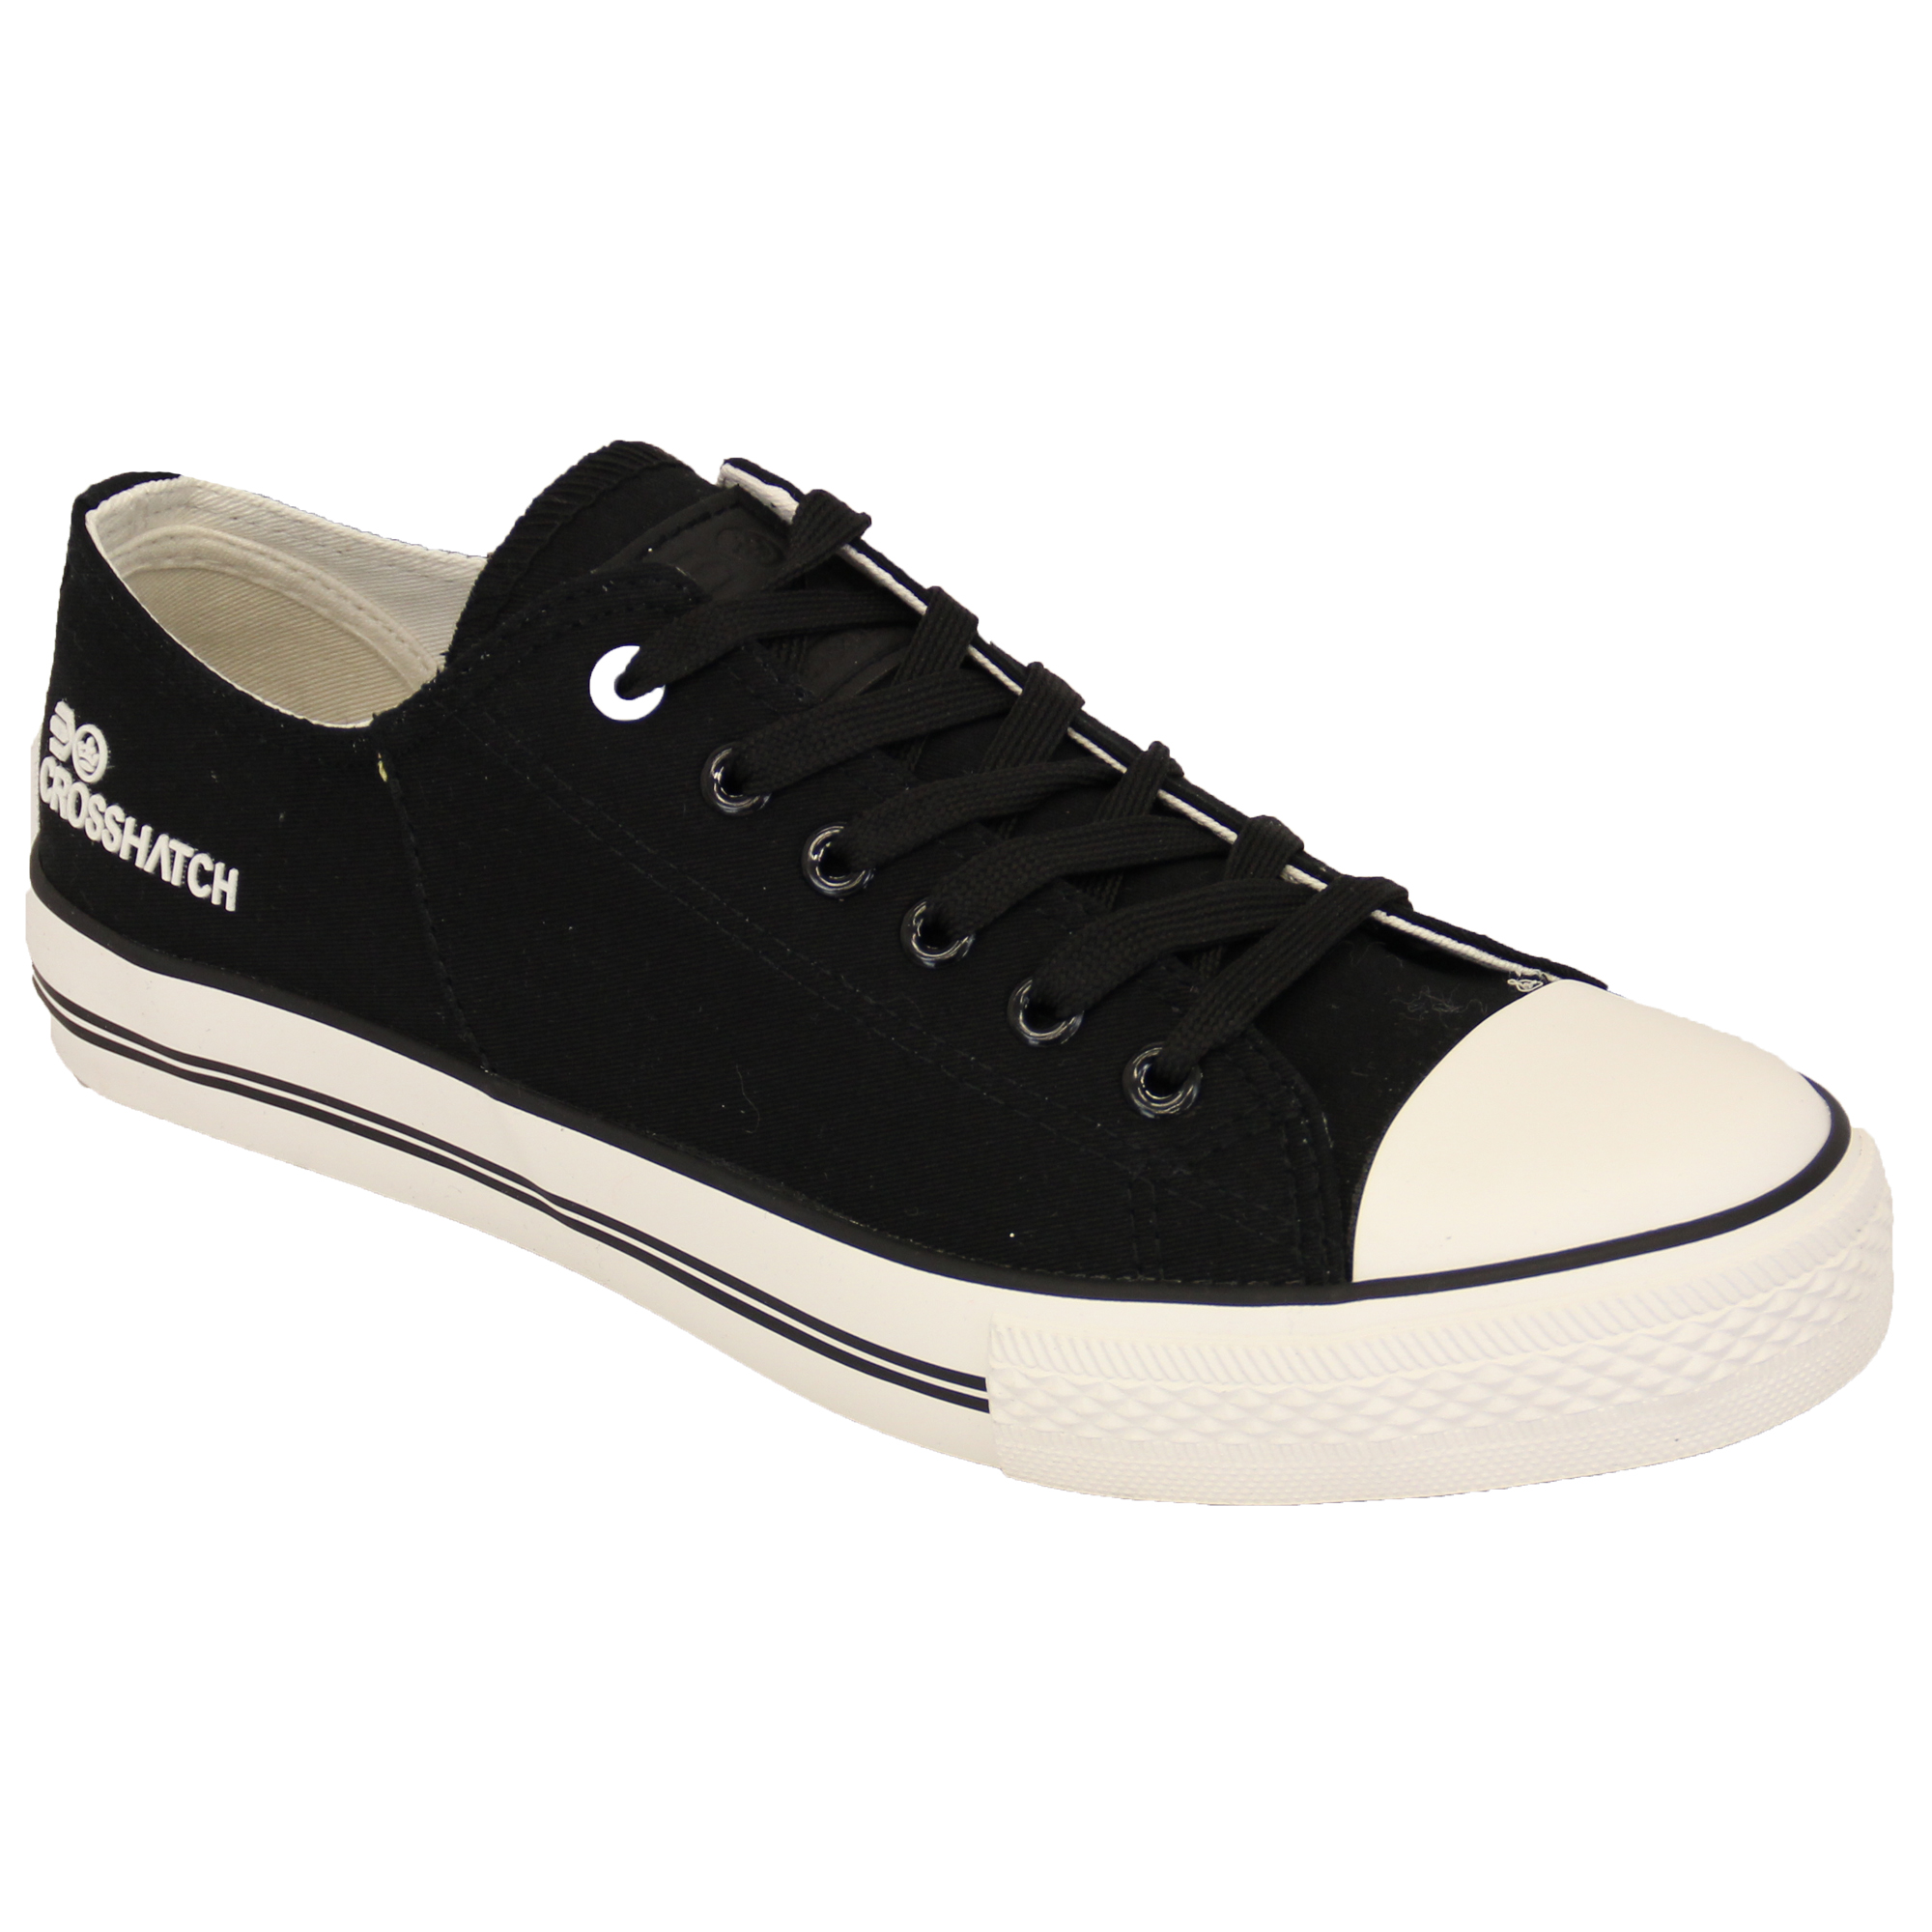 New Tokyo Laundry Low Top Lace Up Canvas Trainers Plimsolls Shoes Size 7-11